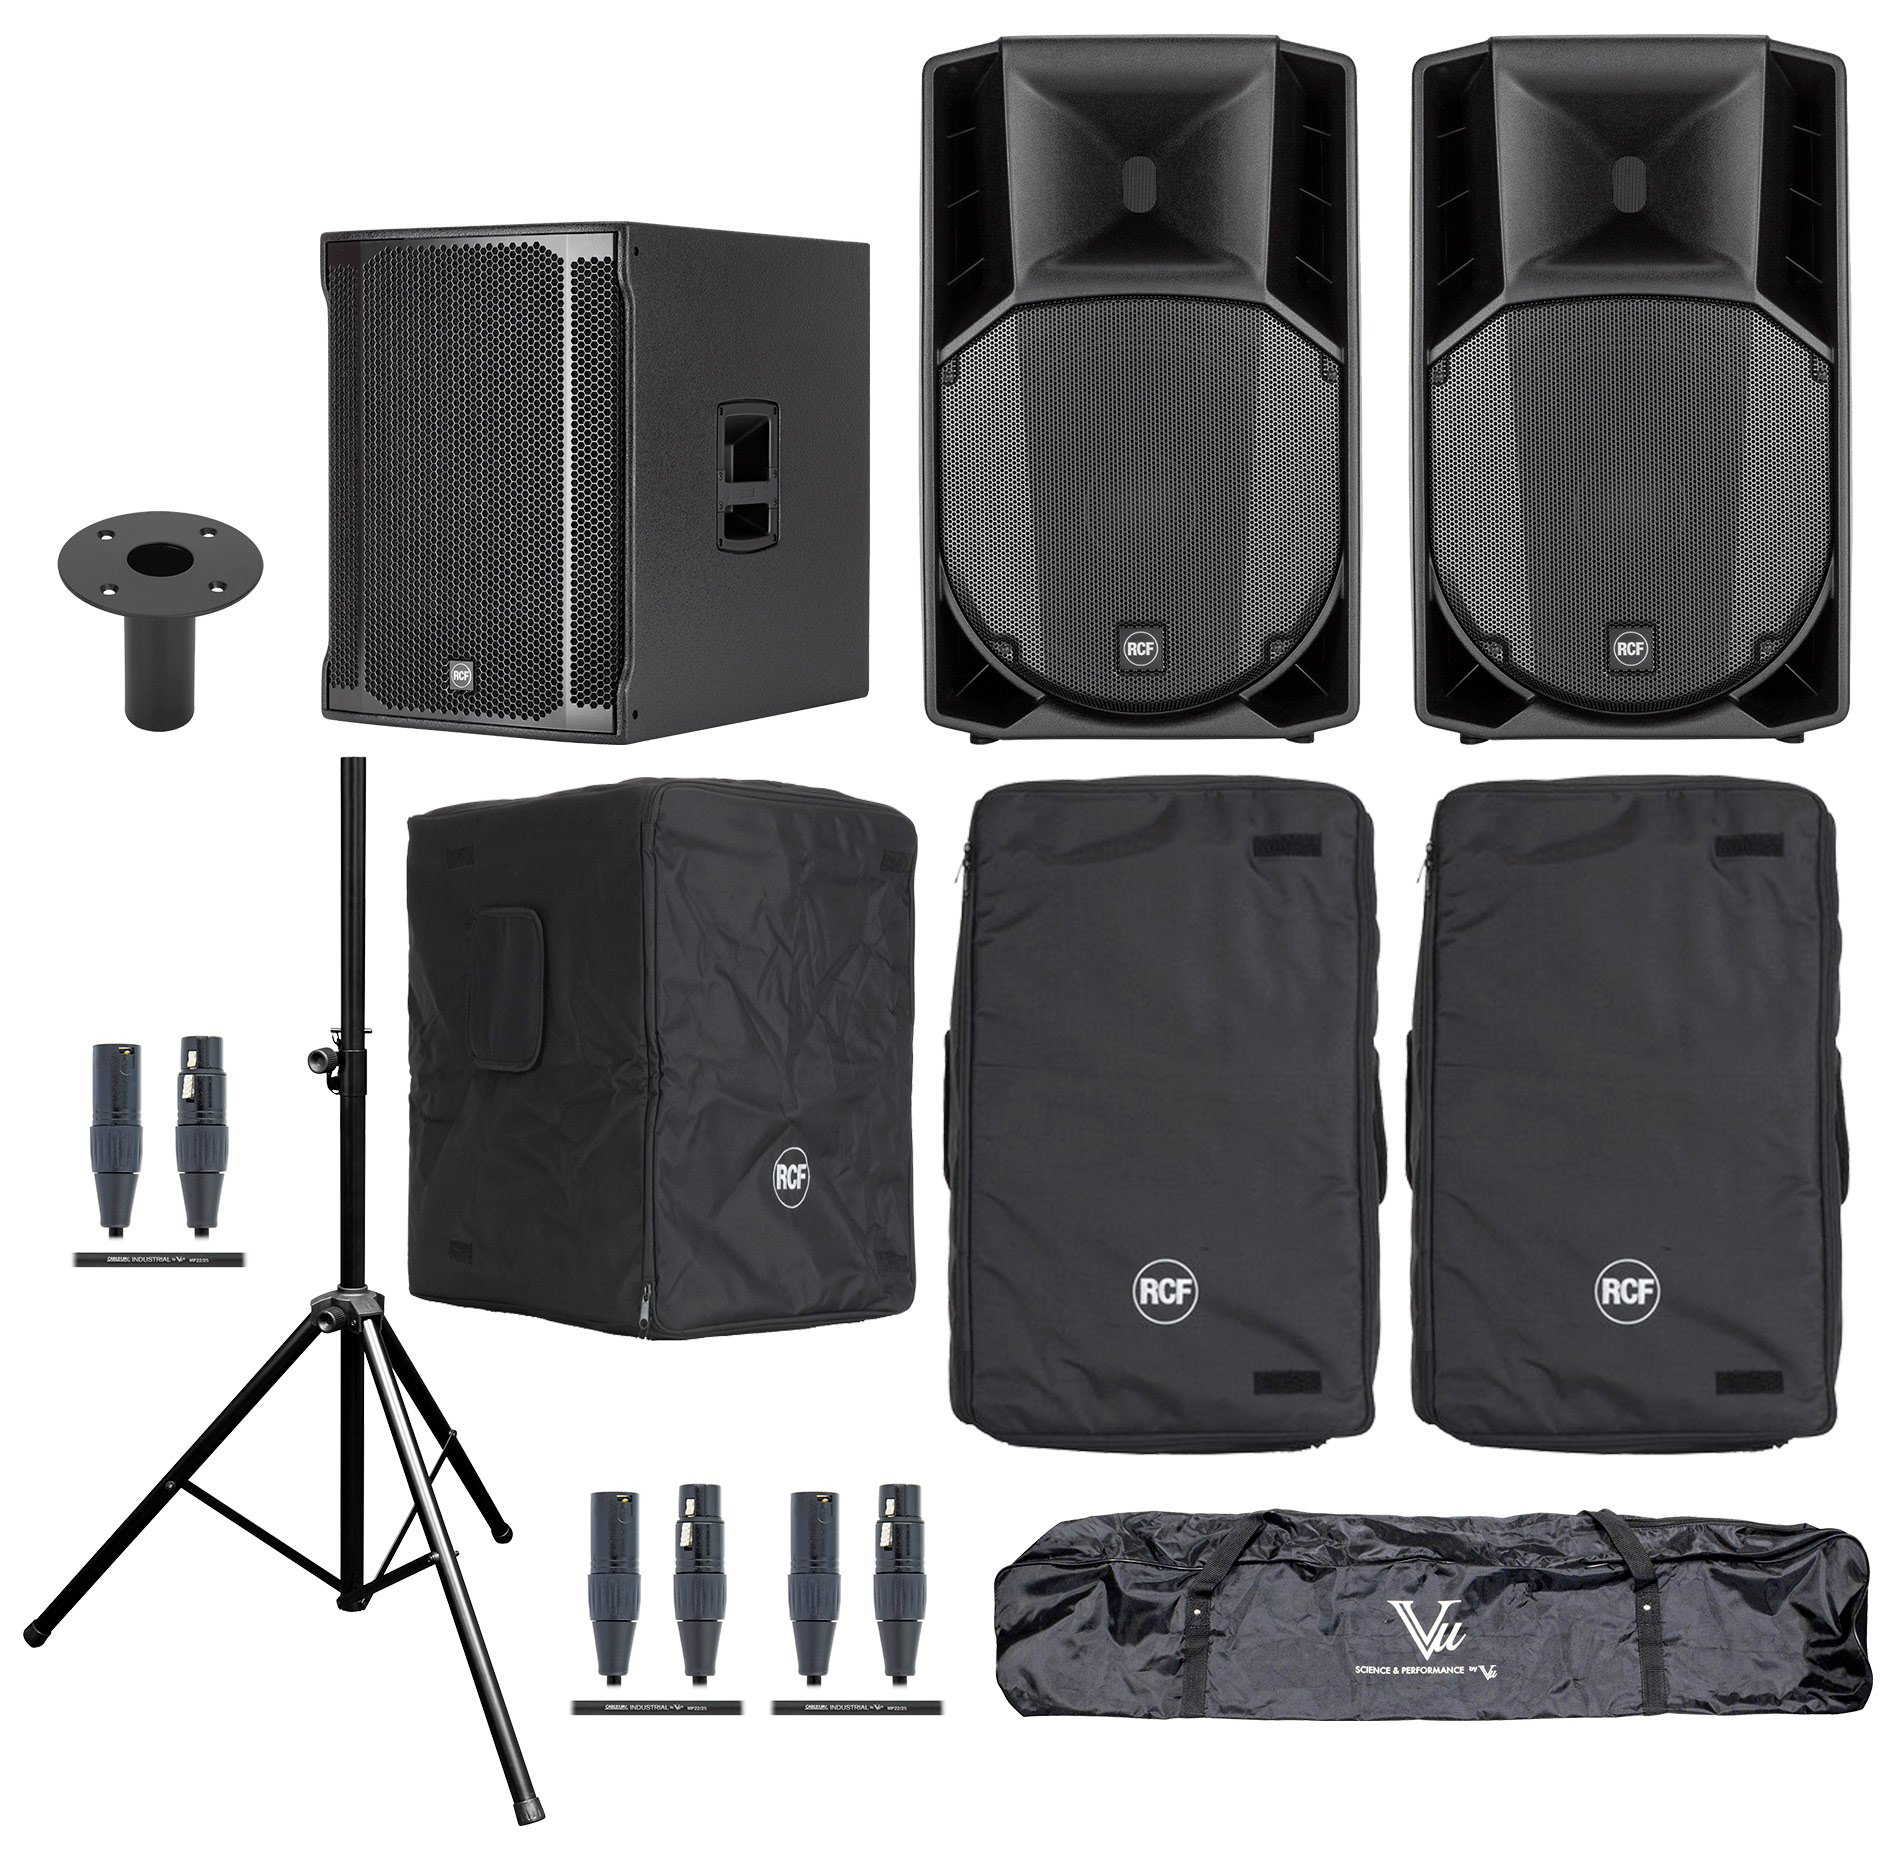 RCF ART-745A-SUB-K Speaker and Sub Bundle with ART 745A Speakers, SUB  8003-AS II Subwoofer, Covers, Stands and Cables | Full Compass